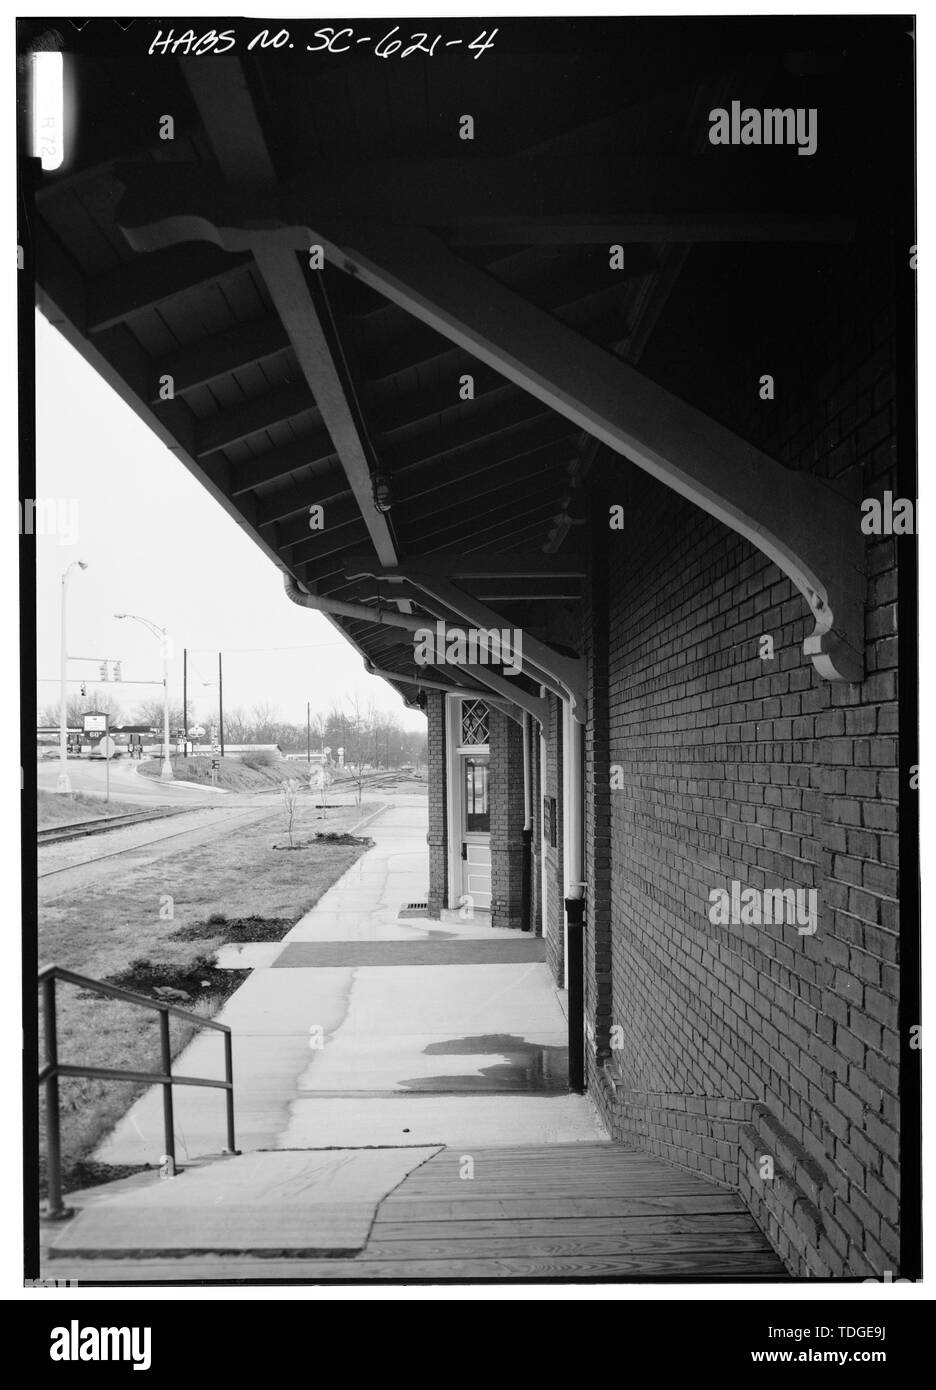 NORTHEAST ELEVATION, VIEW FROM PLATFORM, LOOKING EAST - Southern Railway Combined Depot, West side of Belton Public Square, Belton, Anderson County, SC; Cary, Brian, transmitter - Stock Image